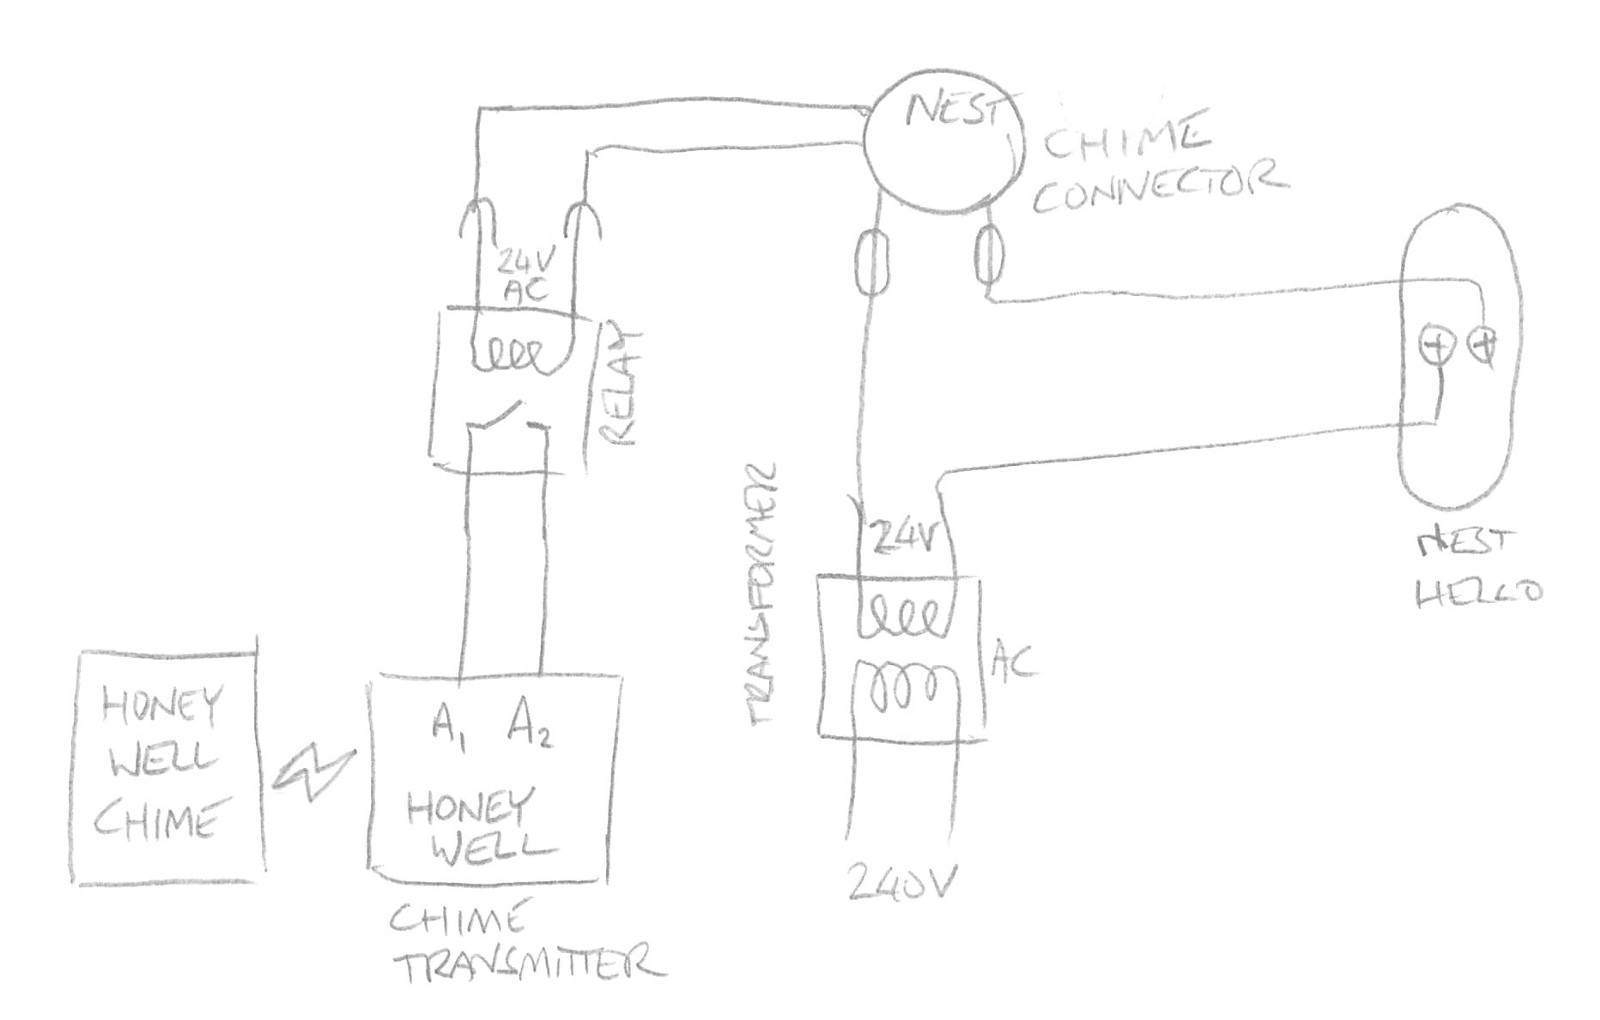 wiring diagram for a doorbell uk 3 phase submersible pump control panel nest hello installation  elliot west medium